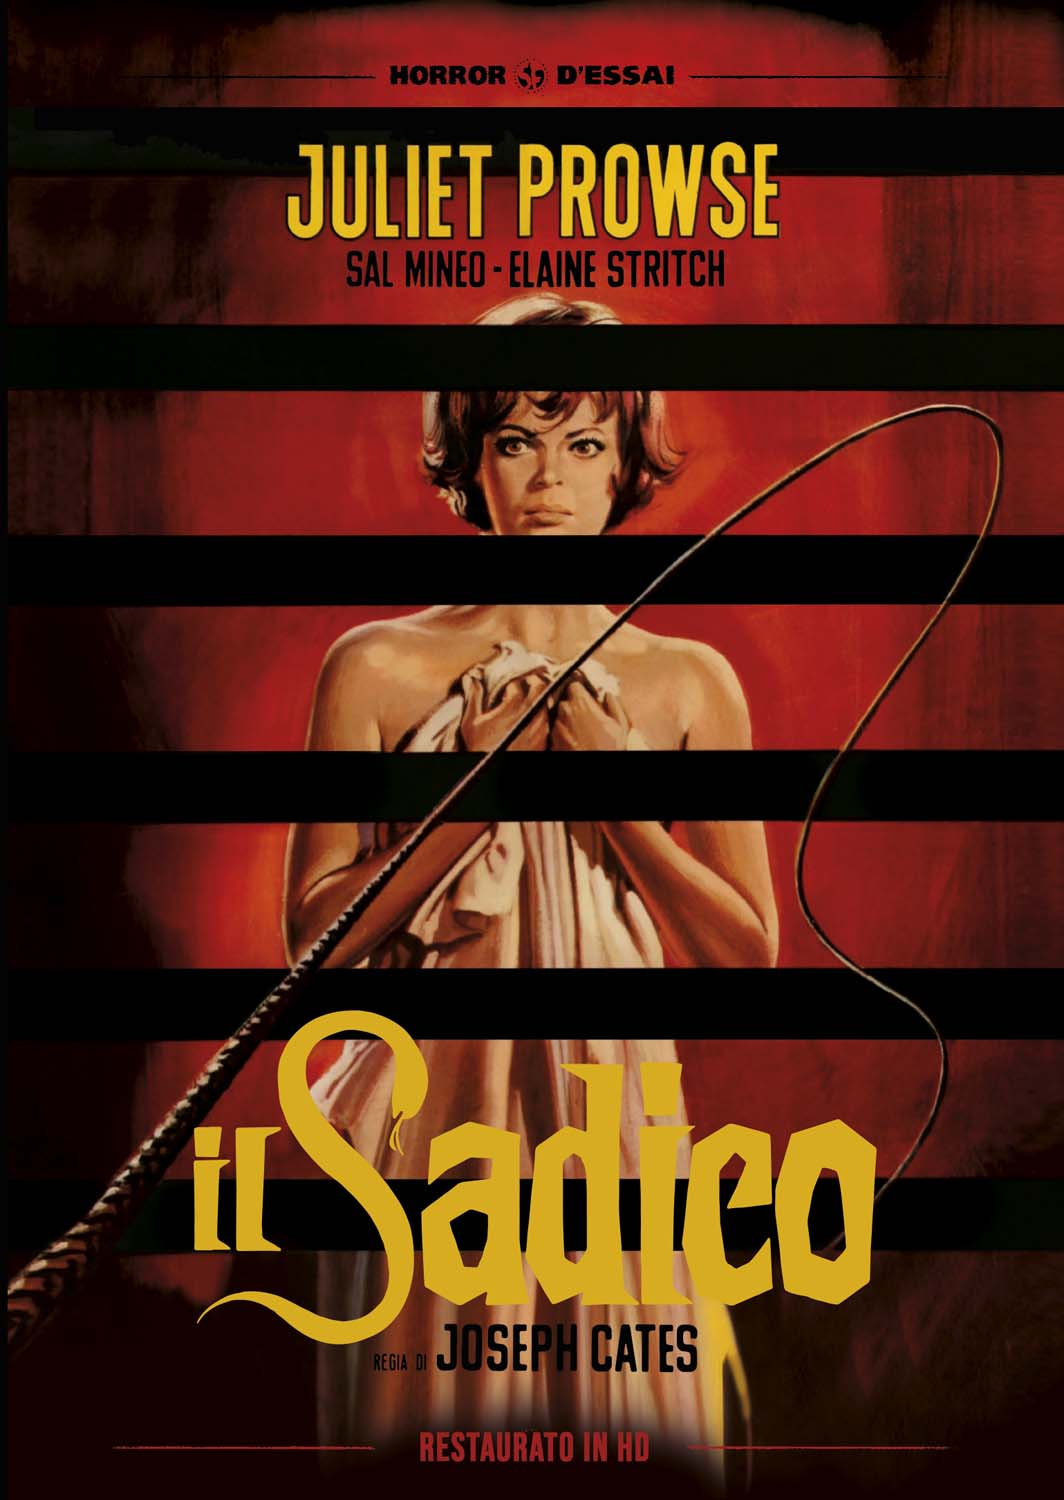 IL SADICO (RESTAURATO IN HD) (DVD)